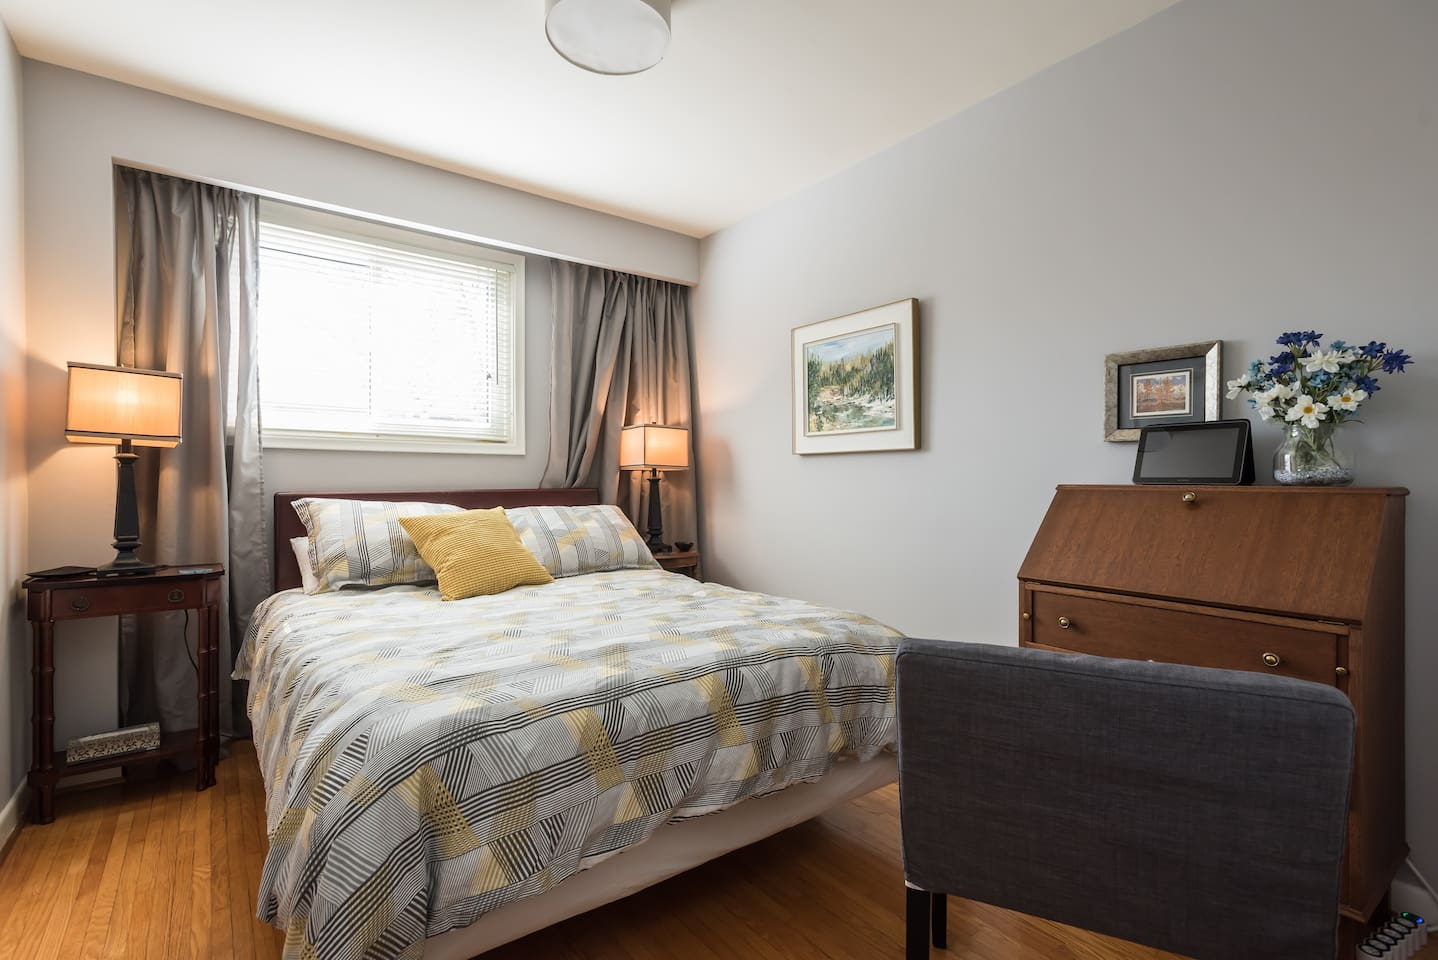 Private guest bedroom with queen-size bed, small desk, full use of closet and dresser and separate entrance.